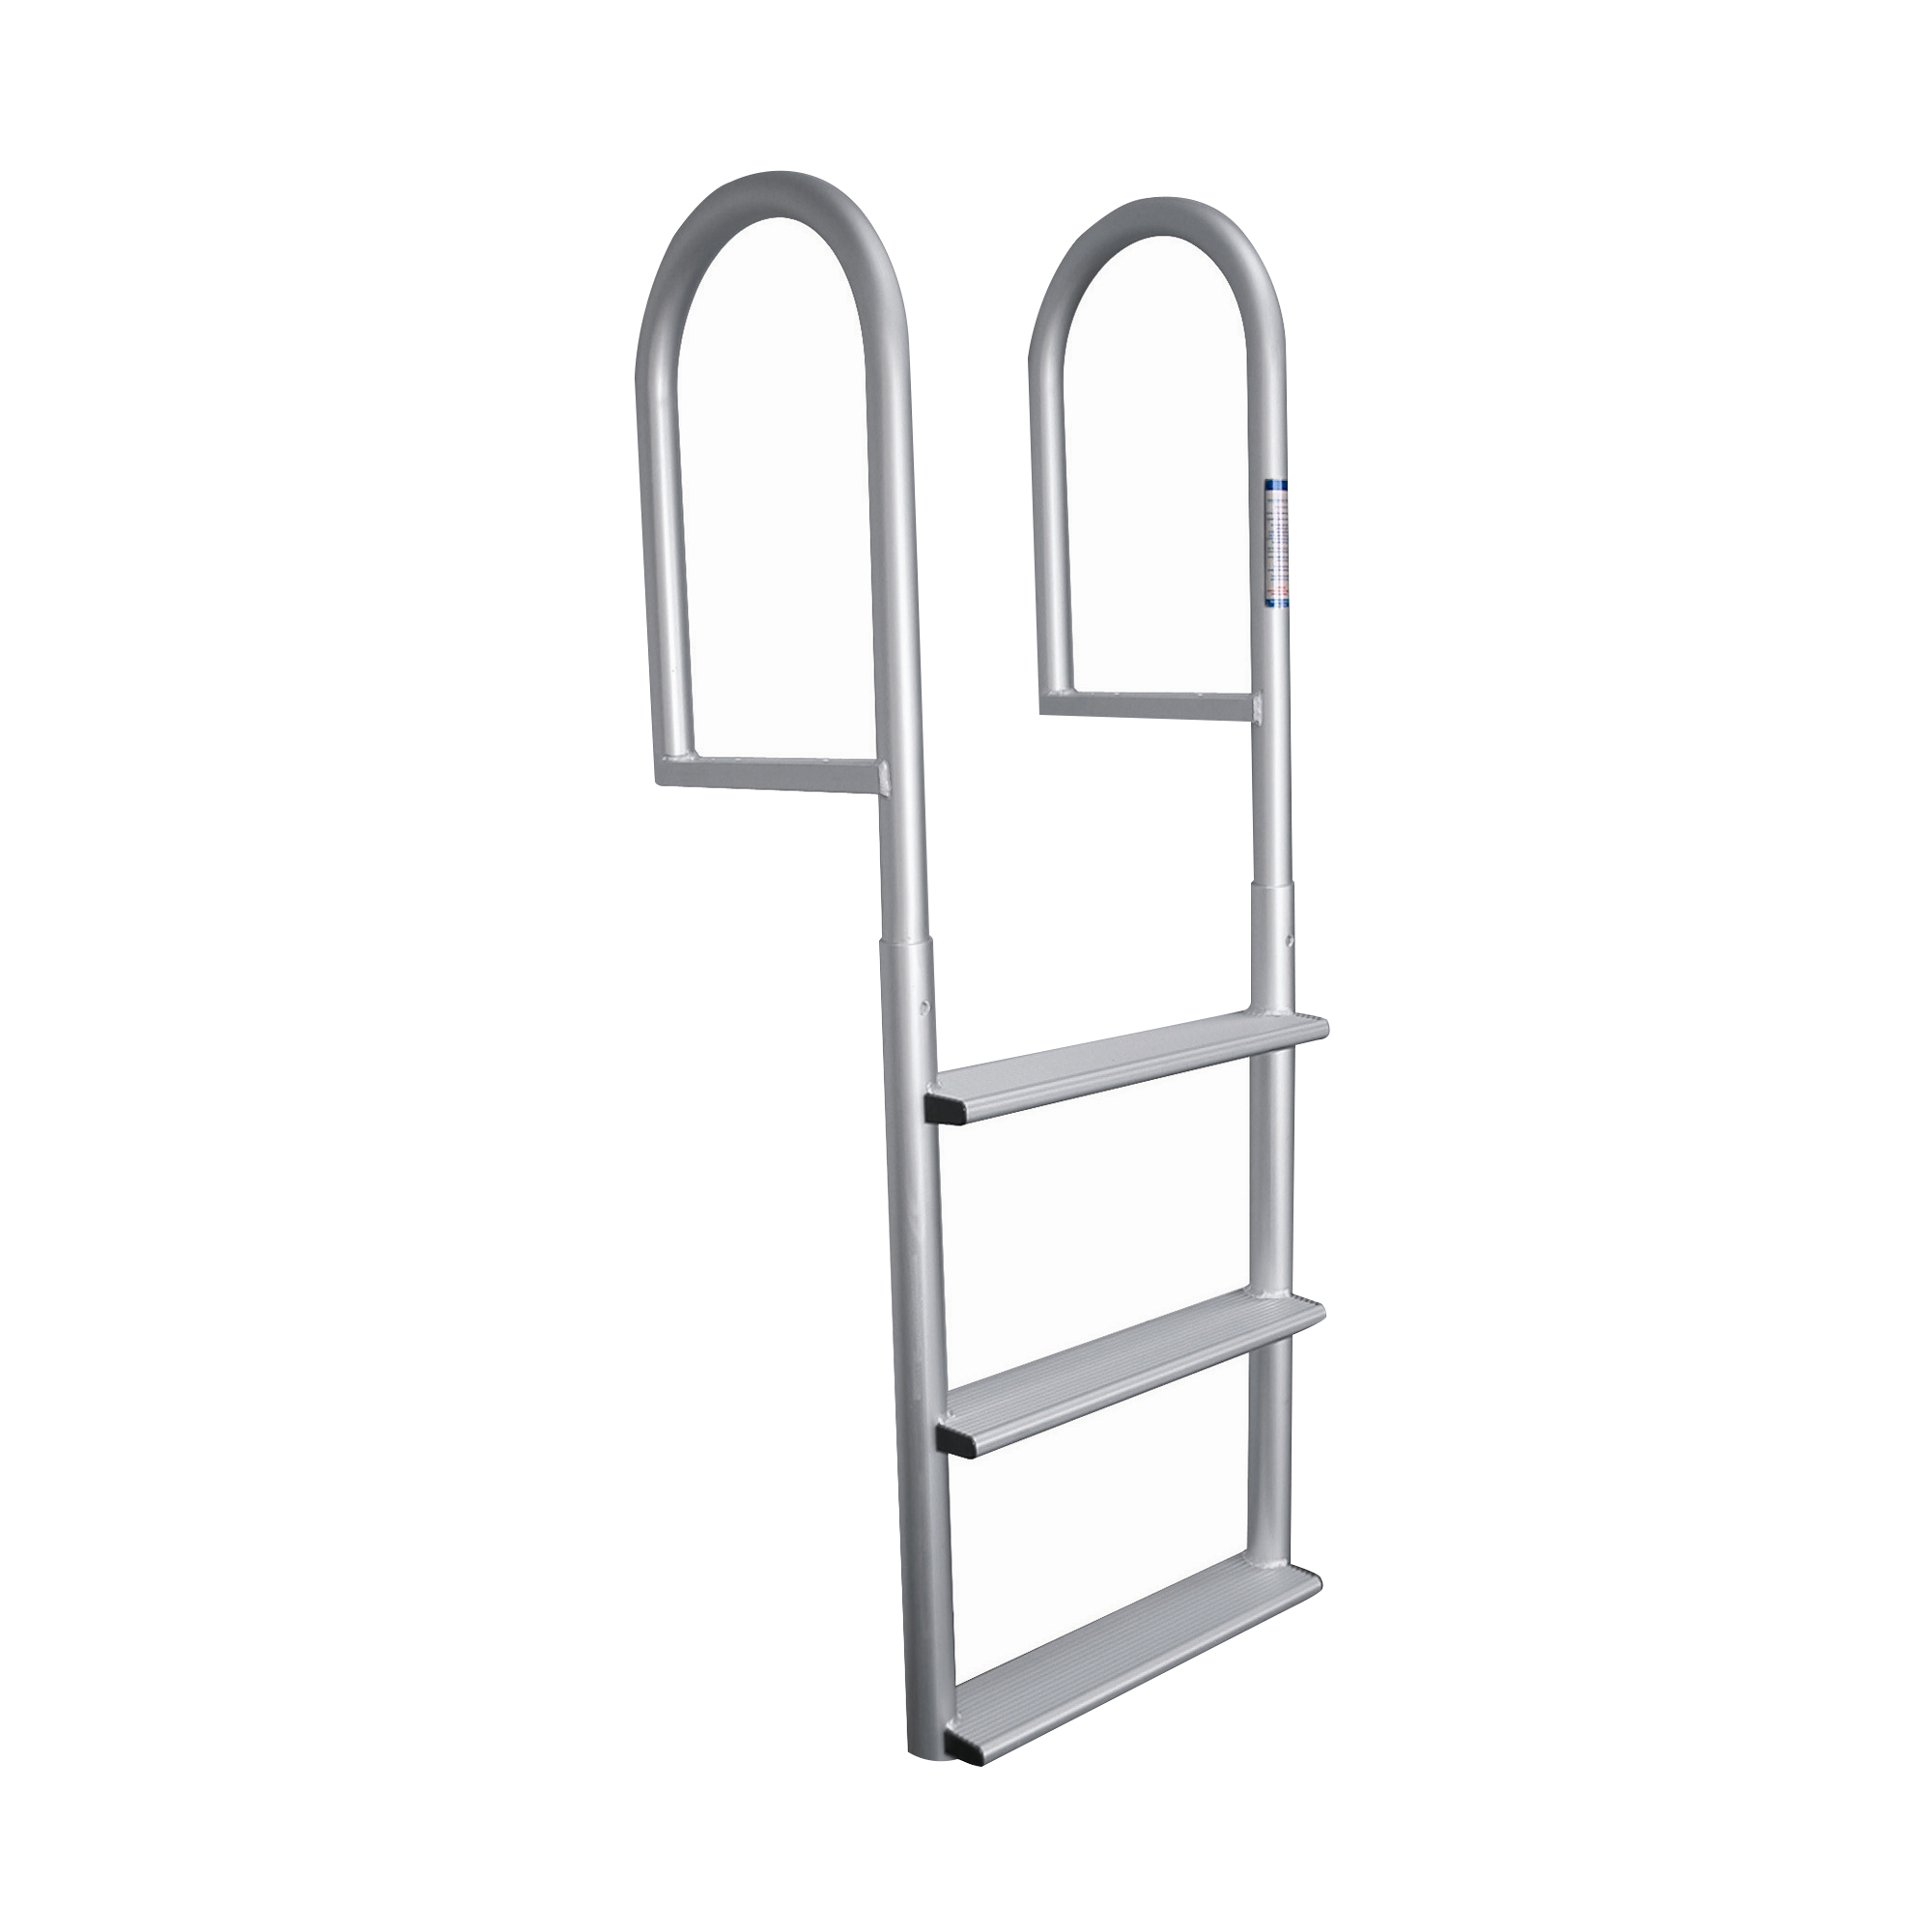 Dockmate Stationary Wide-Step Dock Ladders